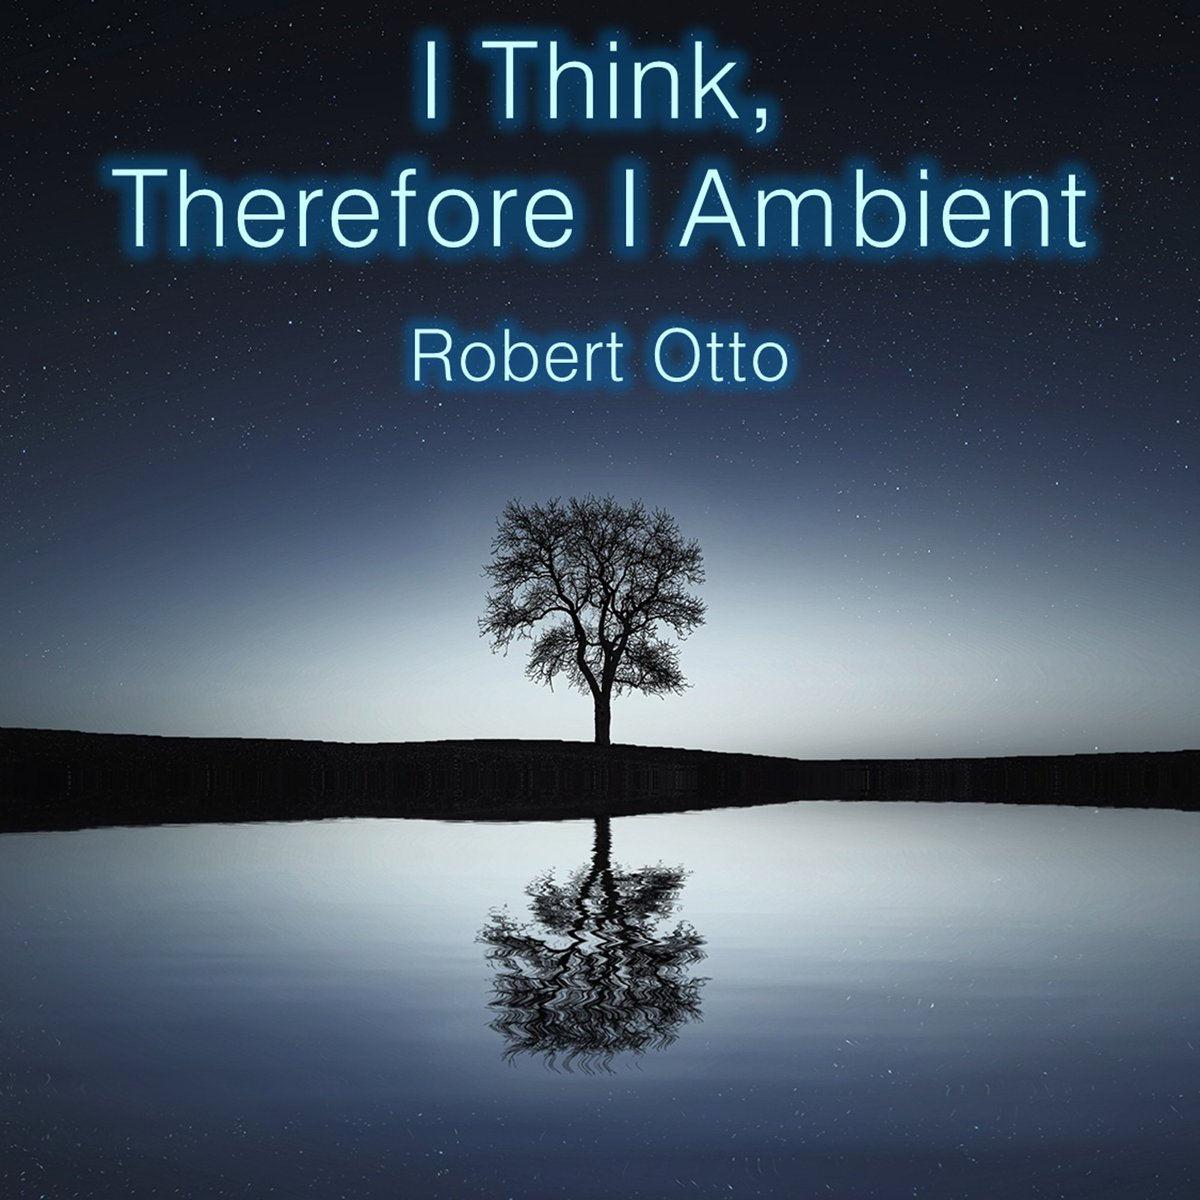 I just released a new album titled I Think, Therefore I Ambient. I hope you enjoy it as much as I did creating it. robertotto.bandcamp.com/album/i-think-…